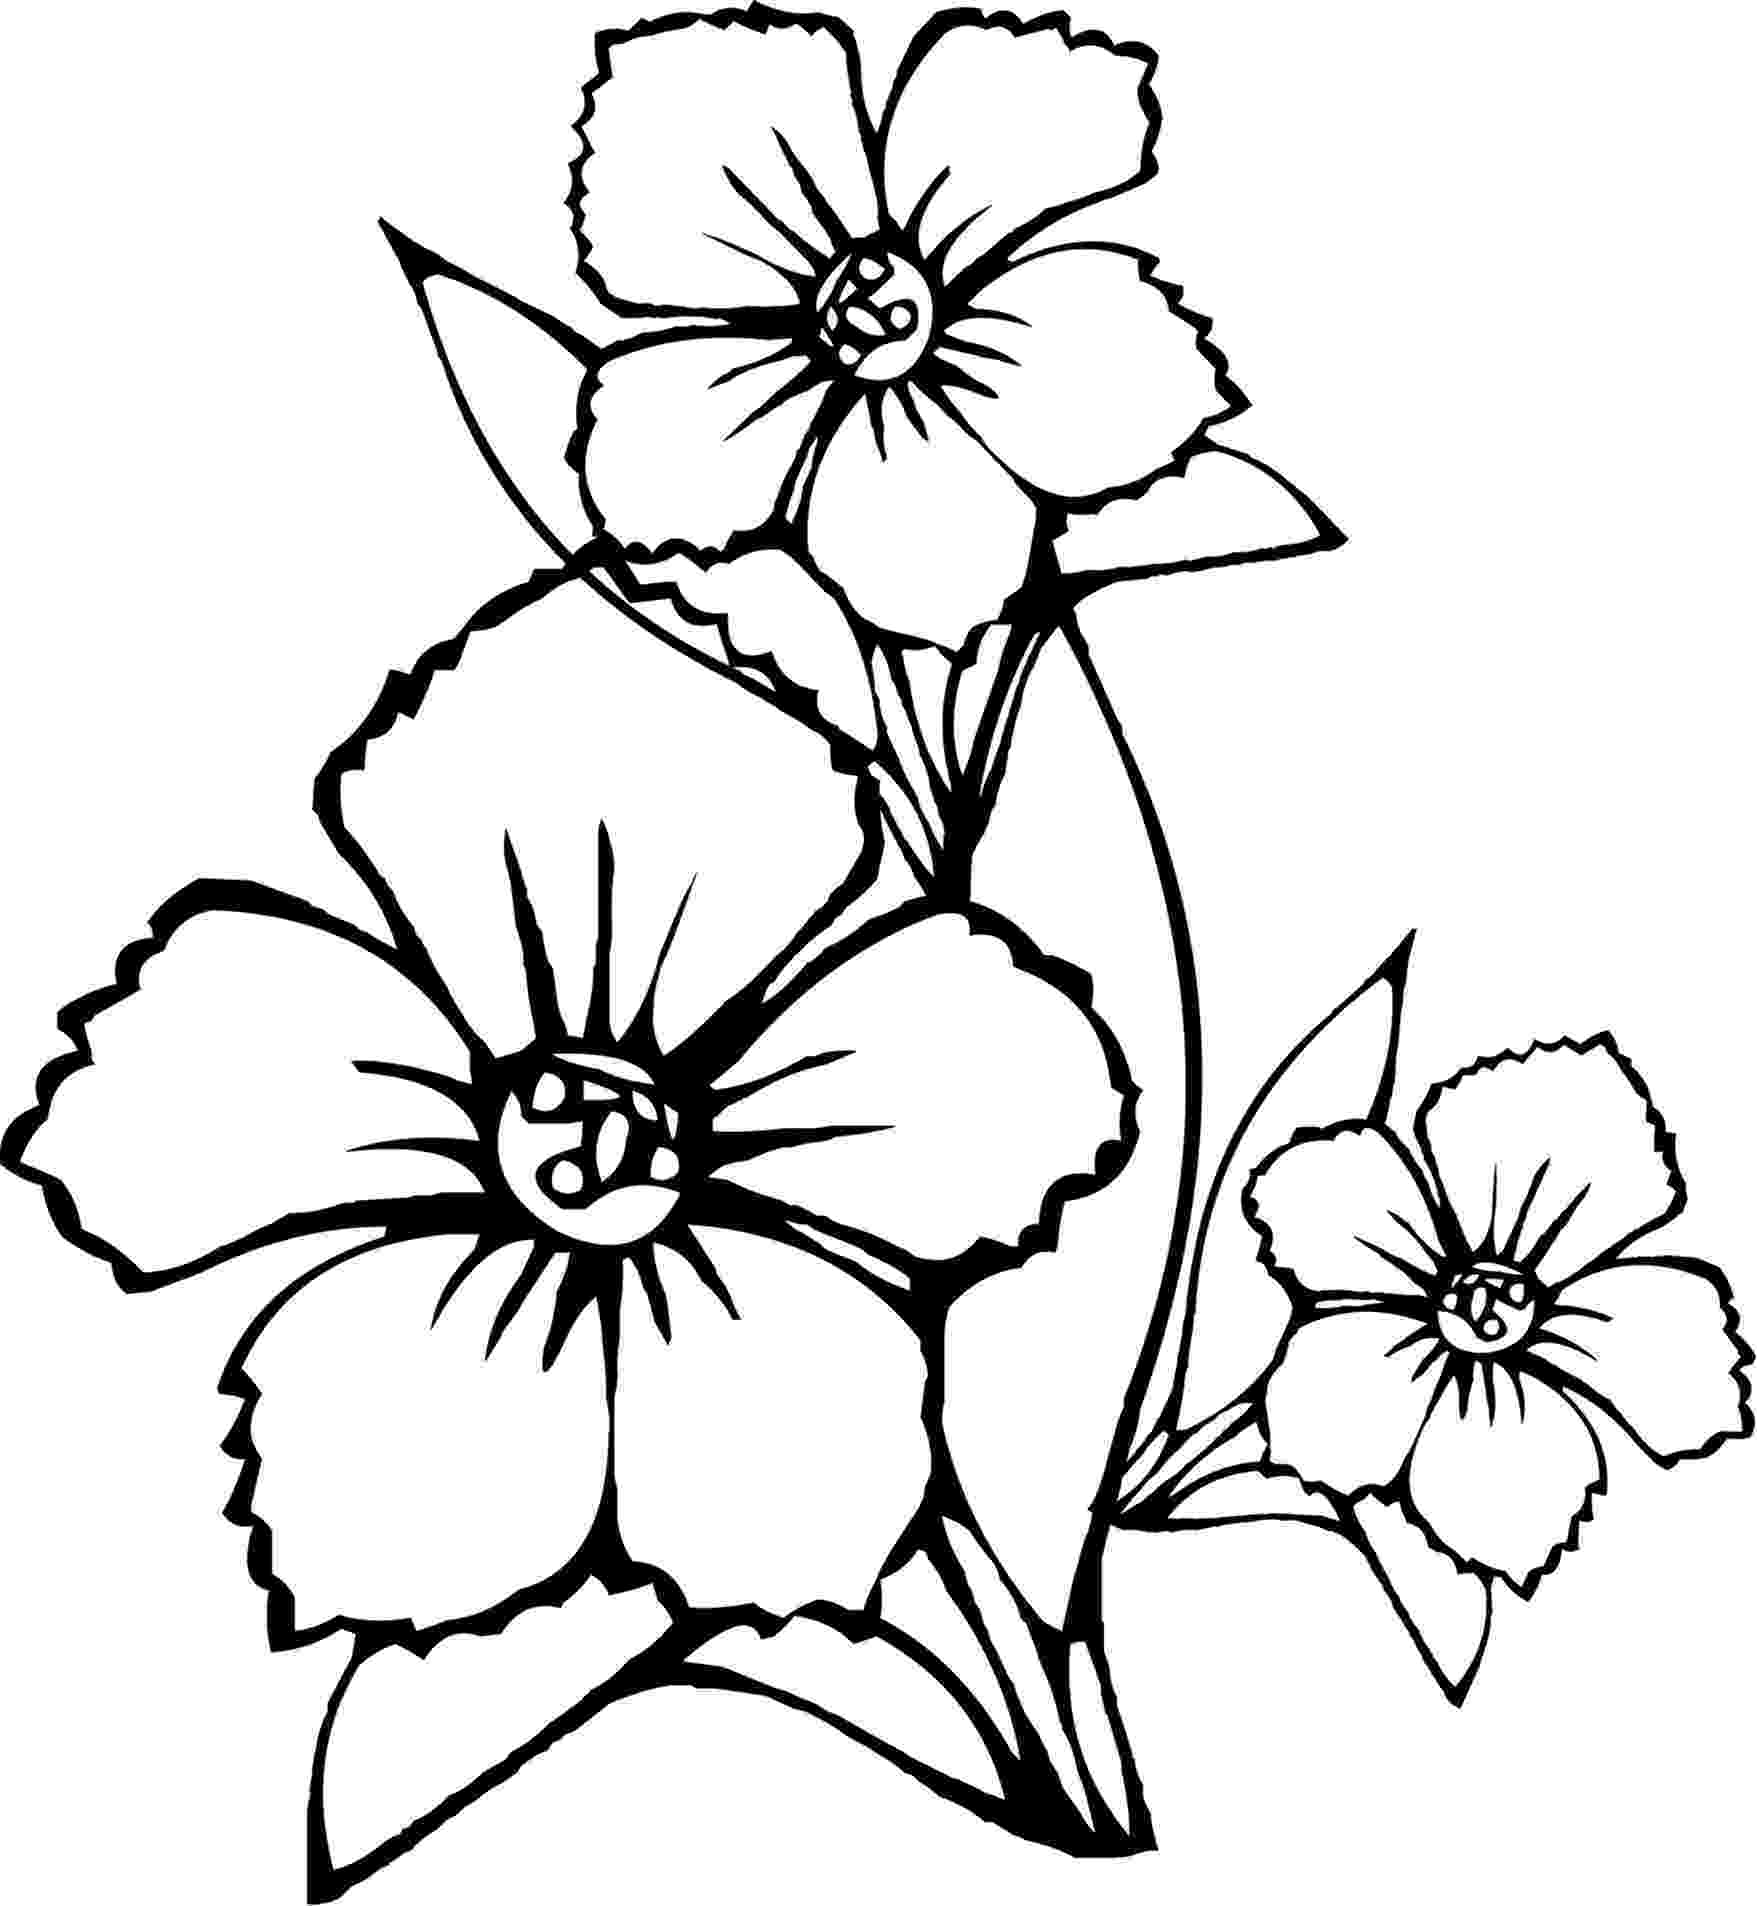 printable flower coloring pages free printable flower coloring pages for kids best coloring flower printable pages